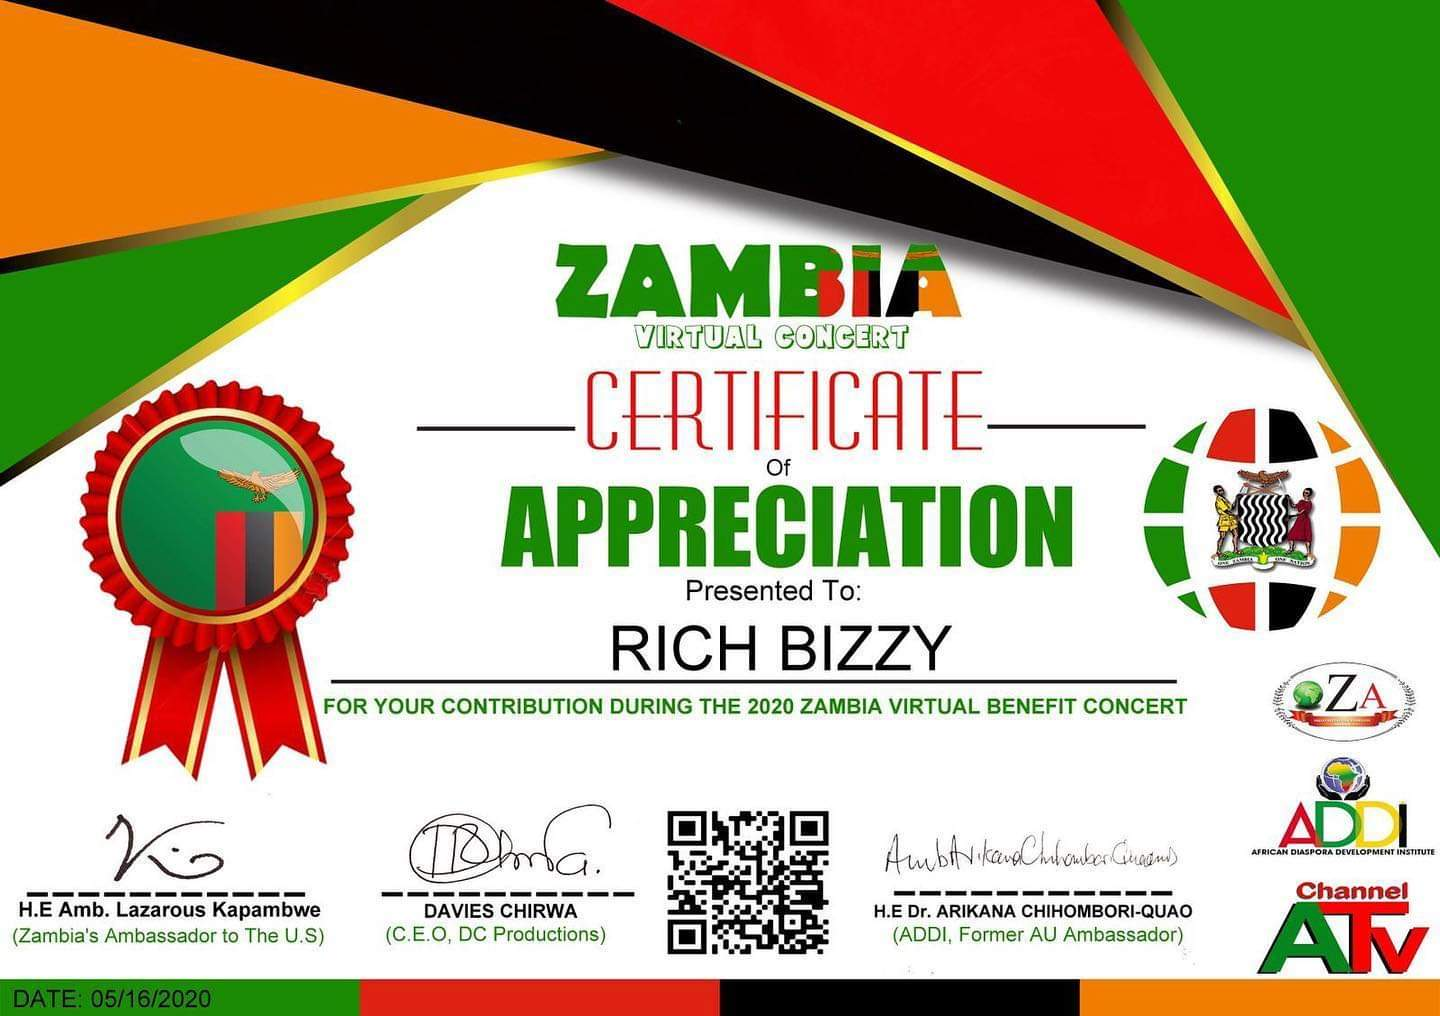 Rich Bizzy awarded for contribution during 2020 virtual benefit concert